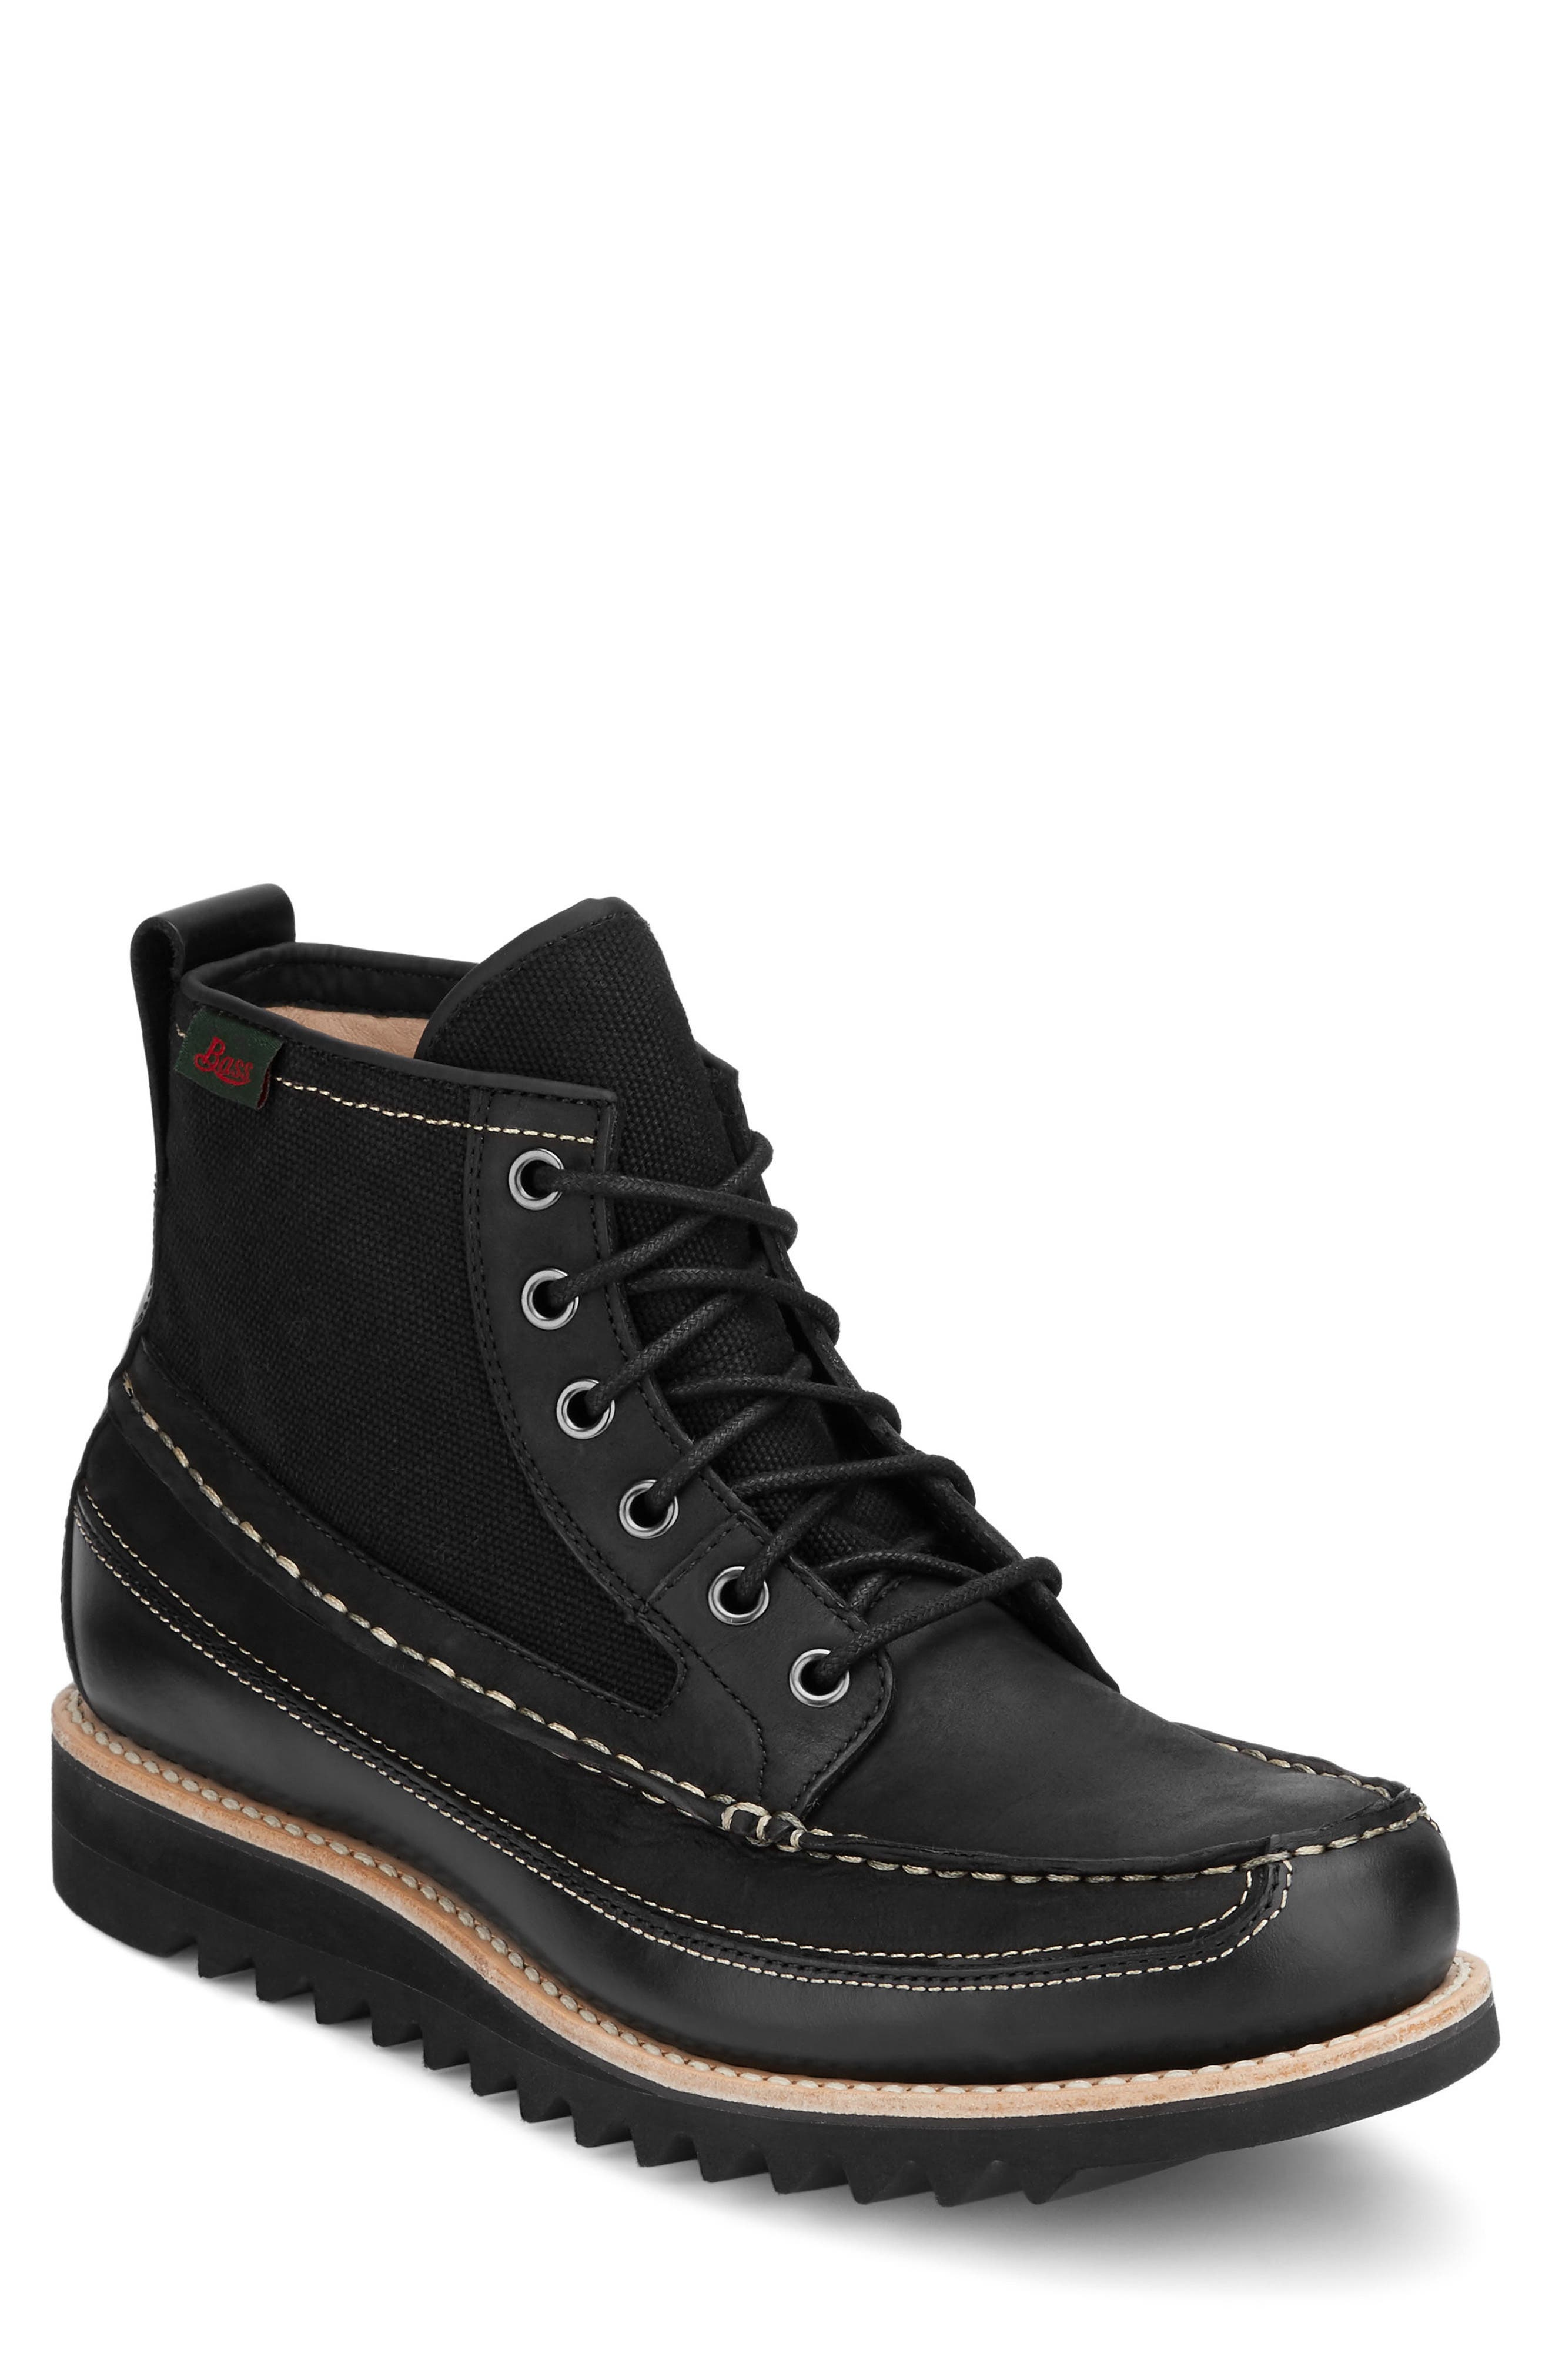 Nickson Razor Moc Toe Boot,                         Main,                         color, 001